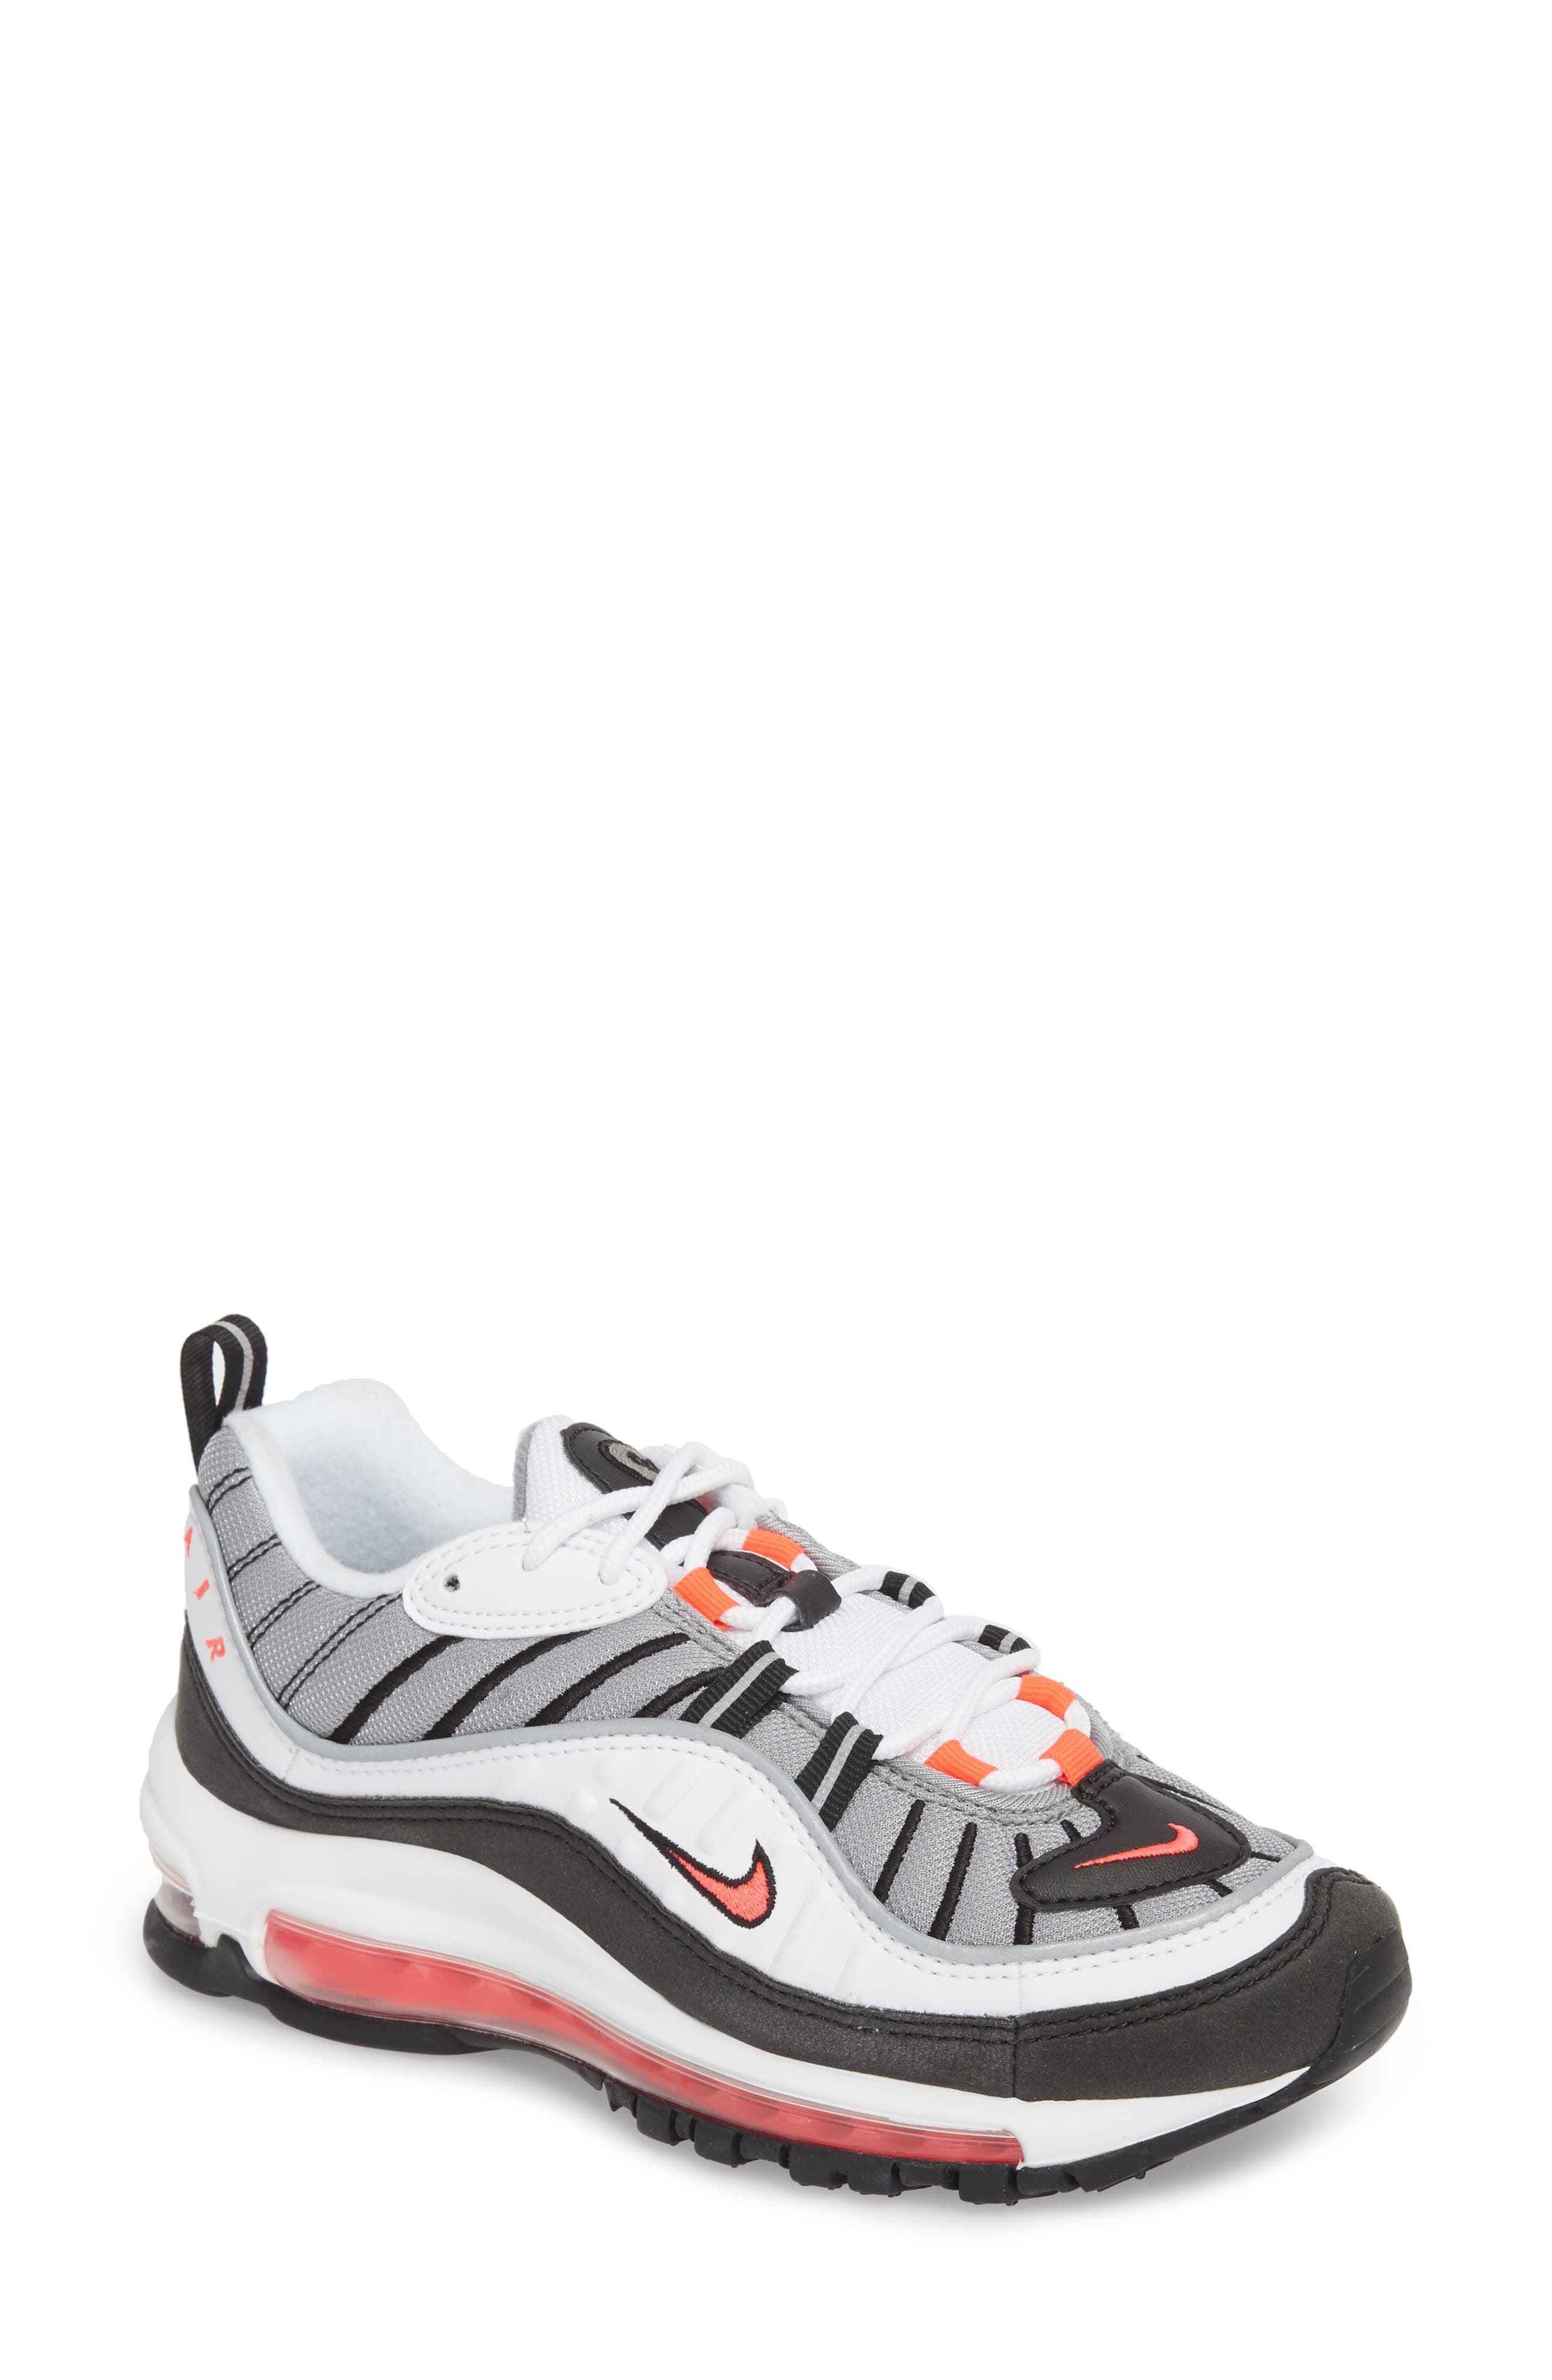 Retro Air Max style meets modern comfort in this breathable  leather-and-mesh sneaker made with a responsive 945f75391